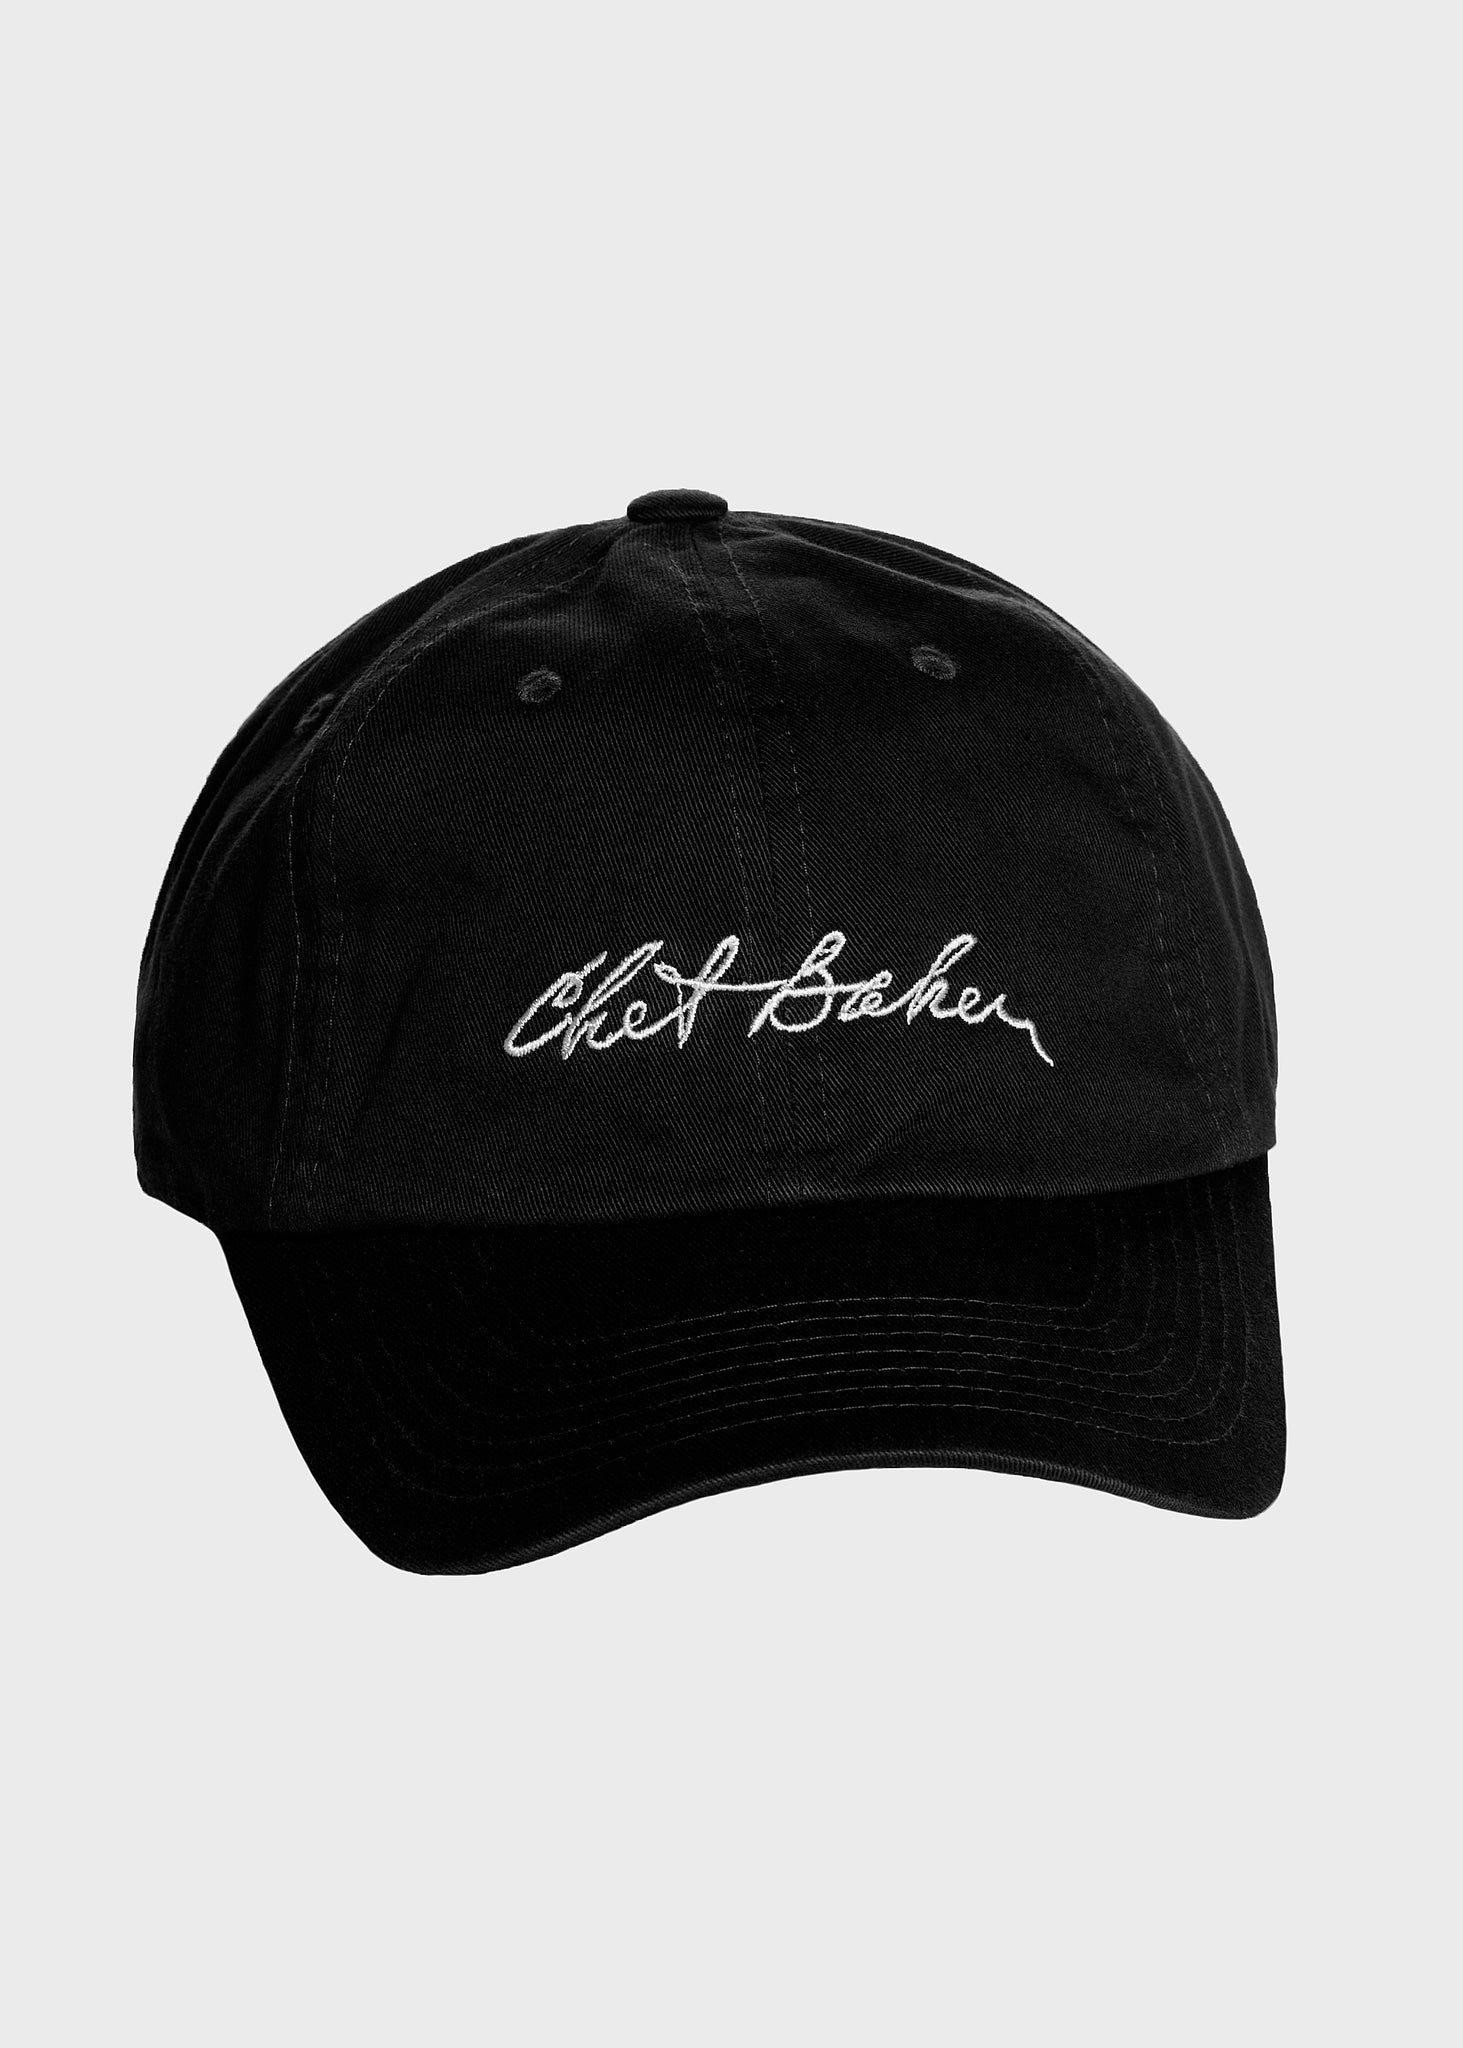 Chet Signature Hat - Black